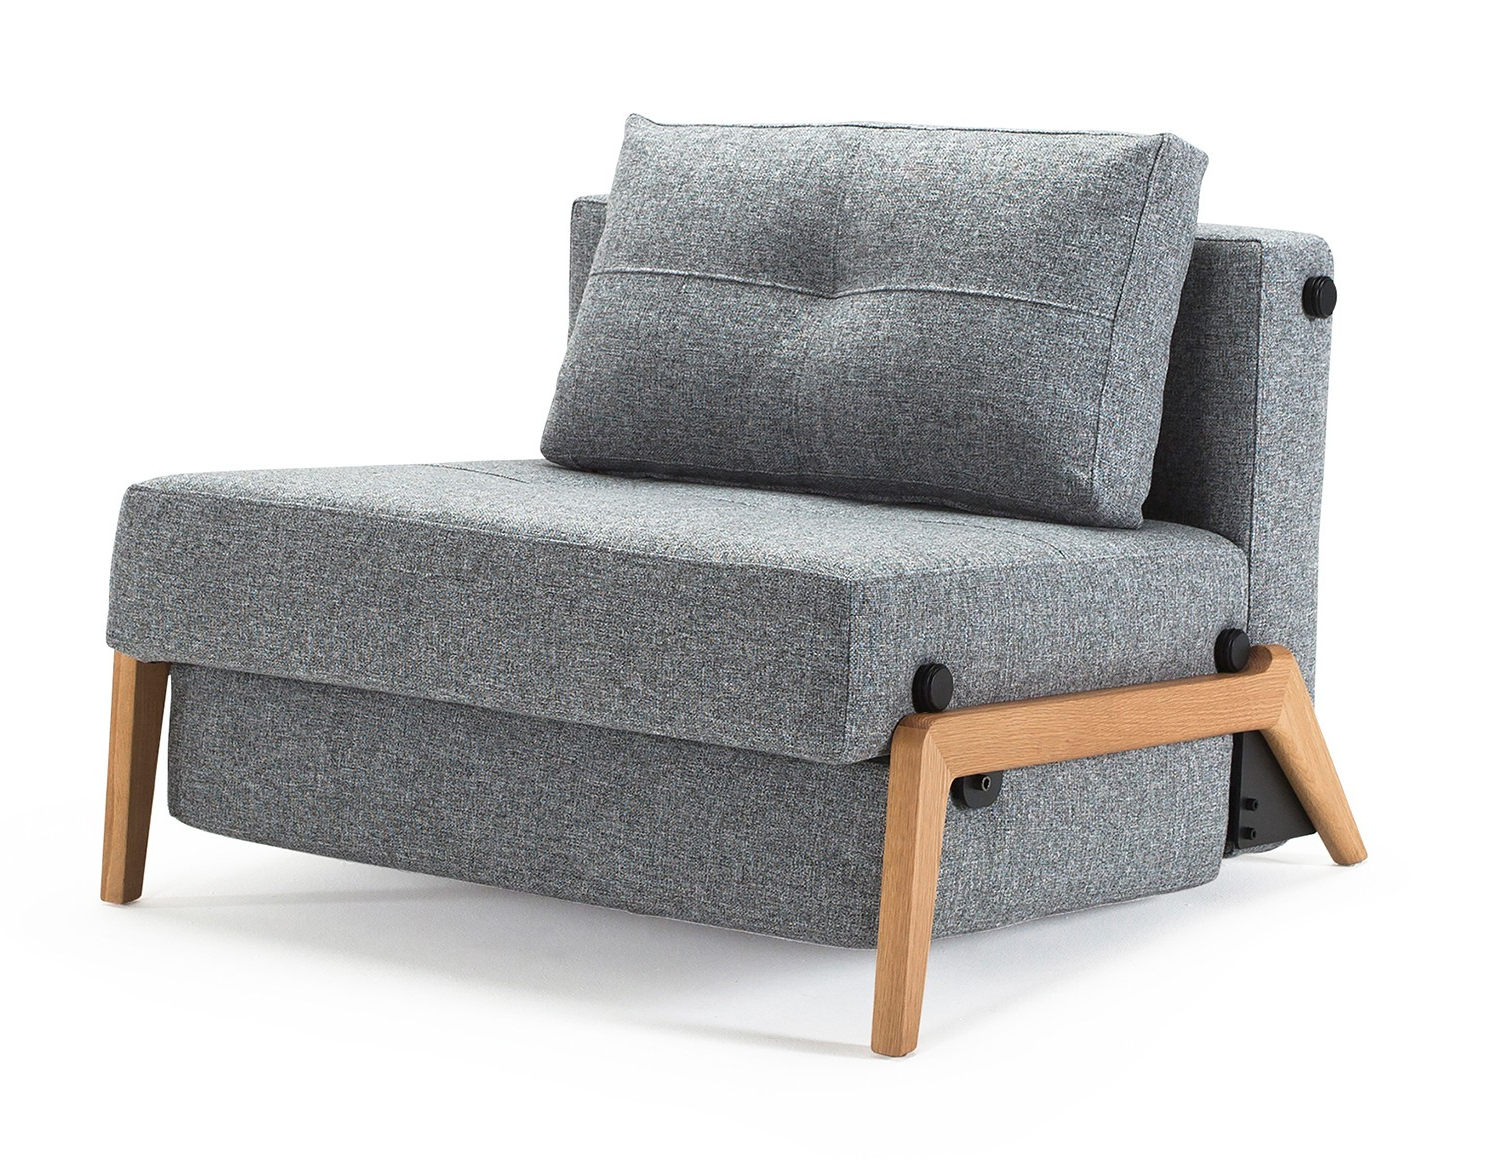 Cubed 90 Single Sofa Bed Chair In Recent Single Sofa Bed Chairs (Gallery 2 of 20)